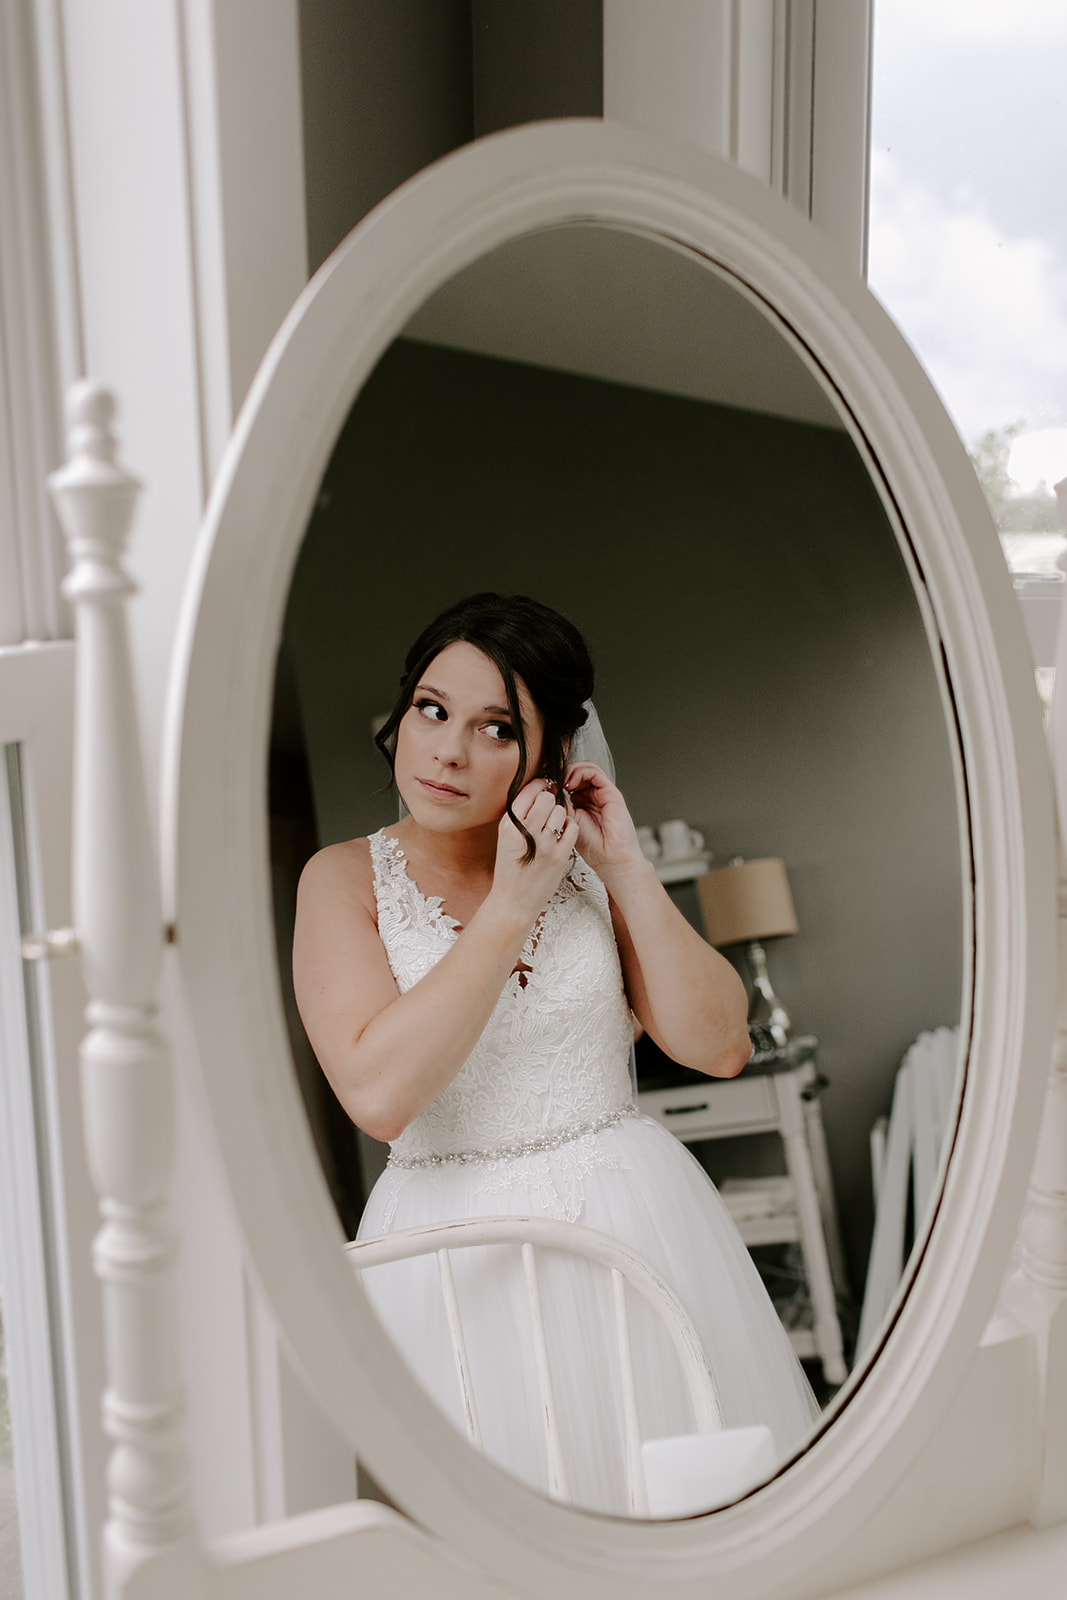 Kendra_and_Mattew_Indiana_Wedding_by_Emily_Wehner-124.jpg